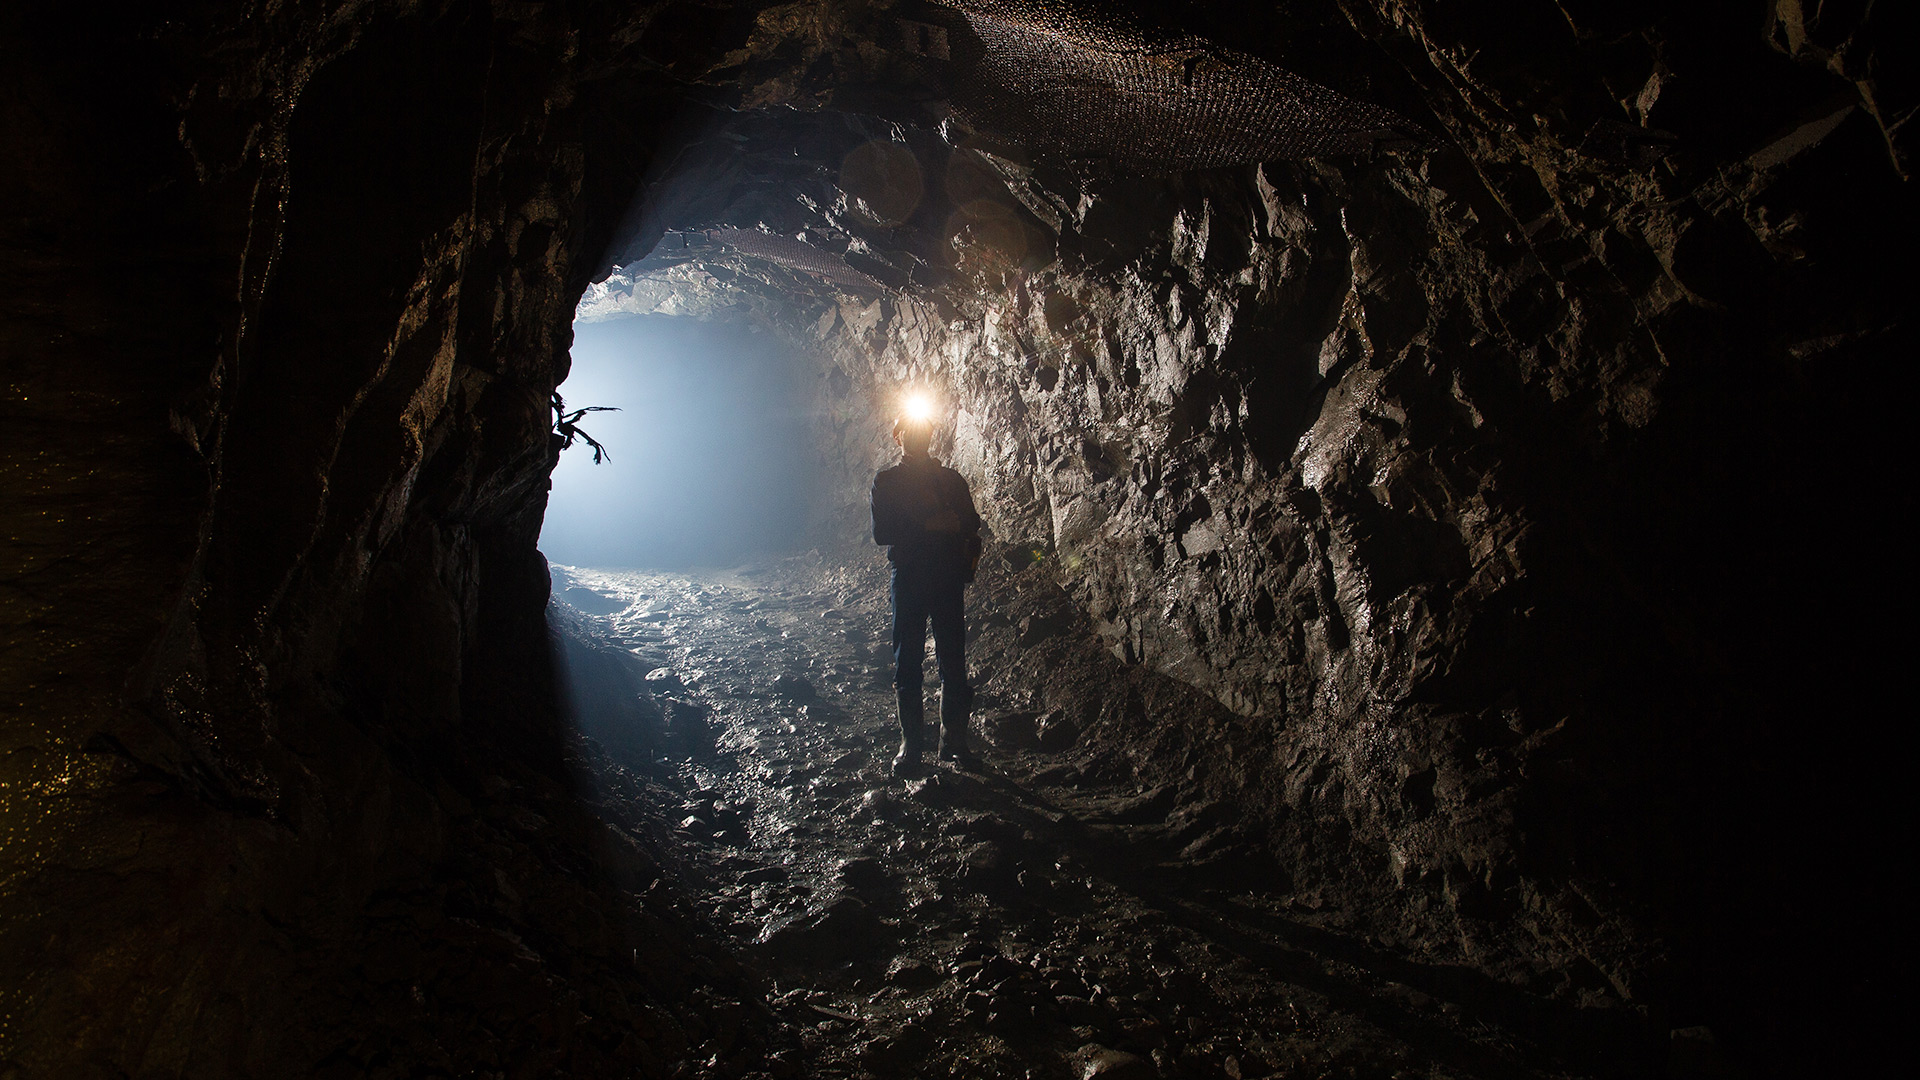 A miner standing in a mine tunnel with his headlight on